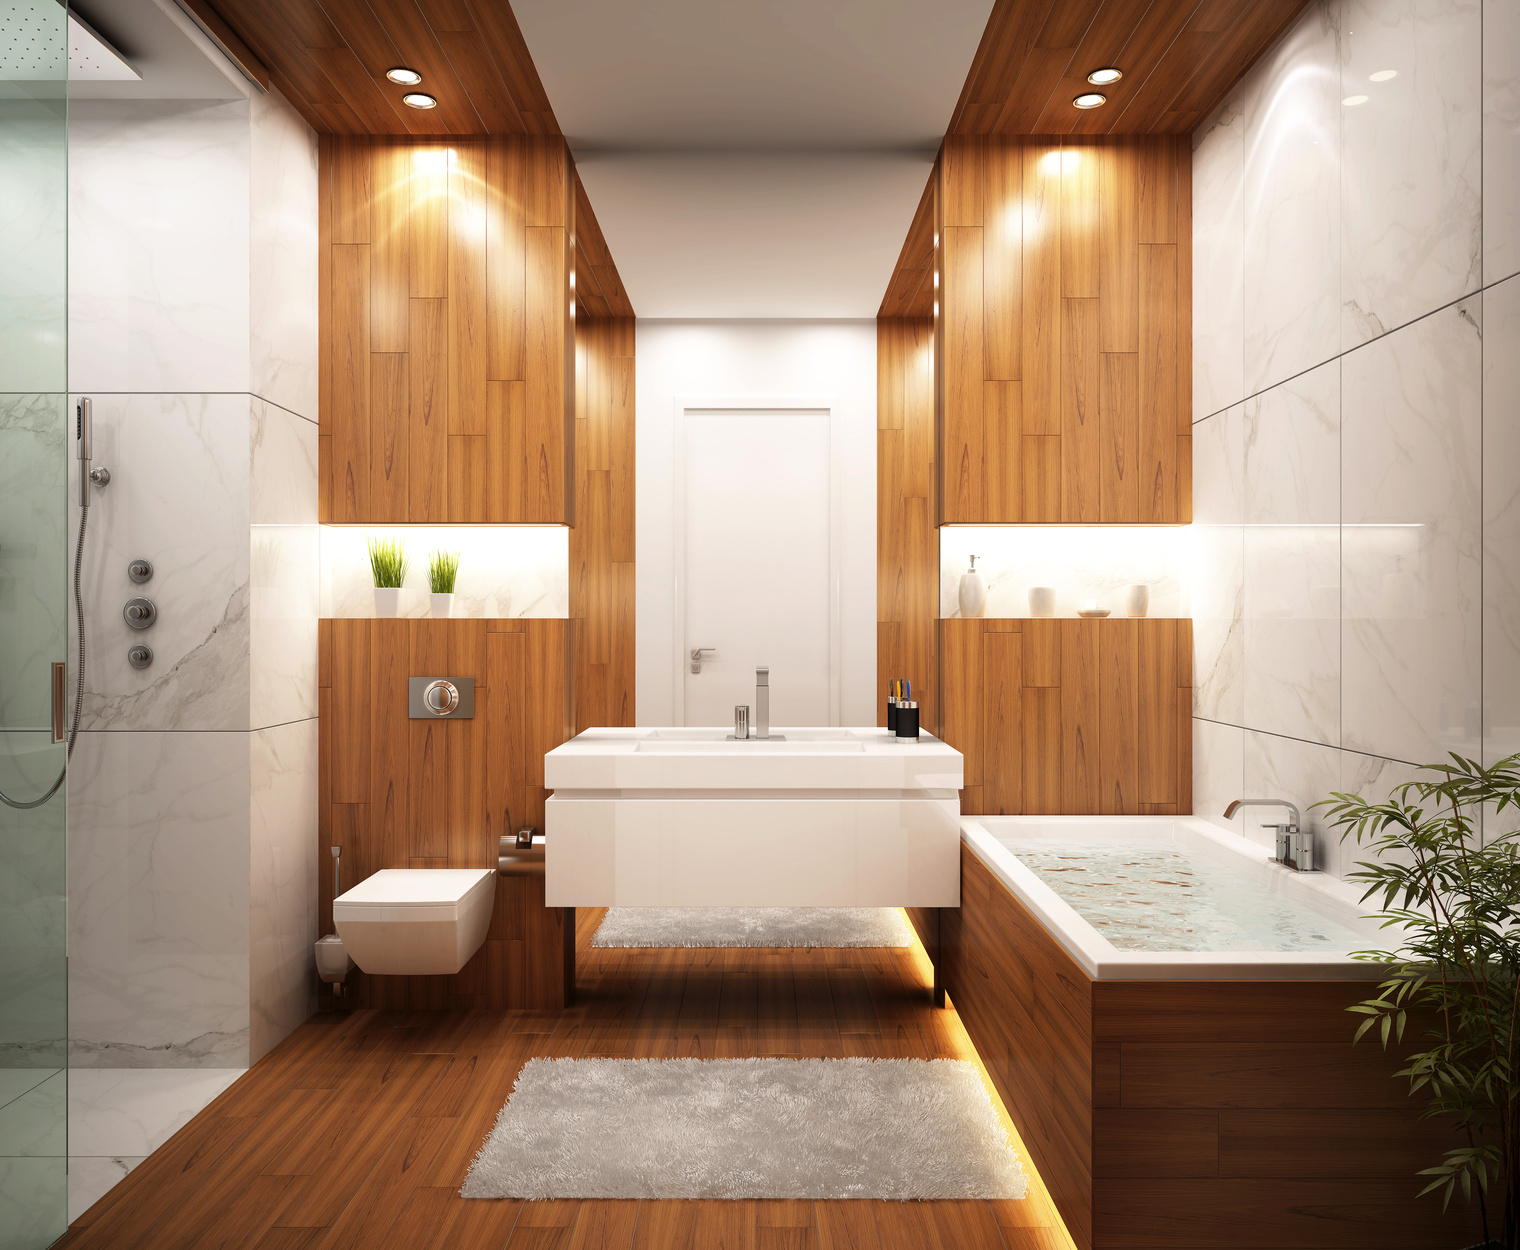 Bathroom Renovations Eastern Suburbs Sydney bathroom renovations | sydney - new home builder / new home